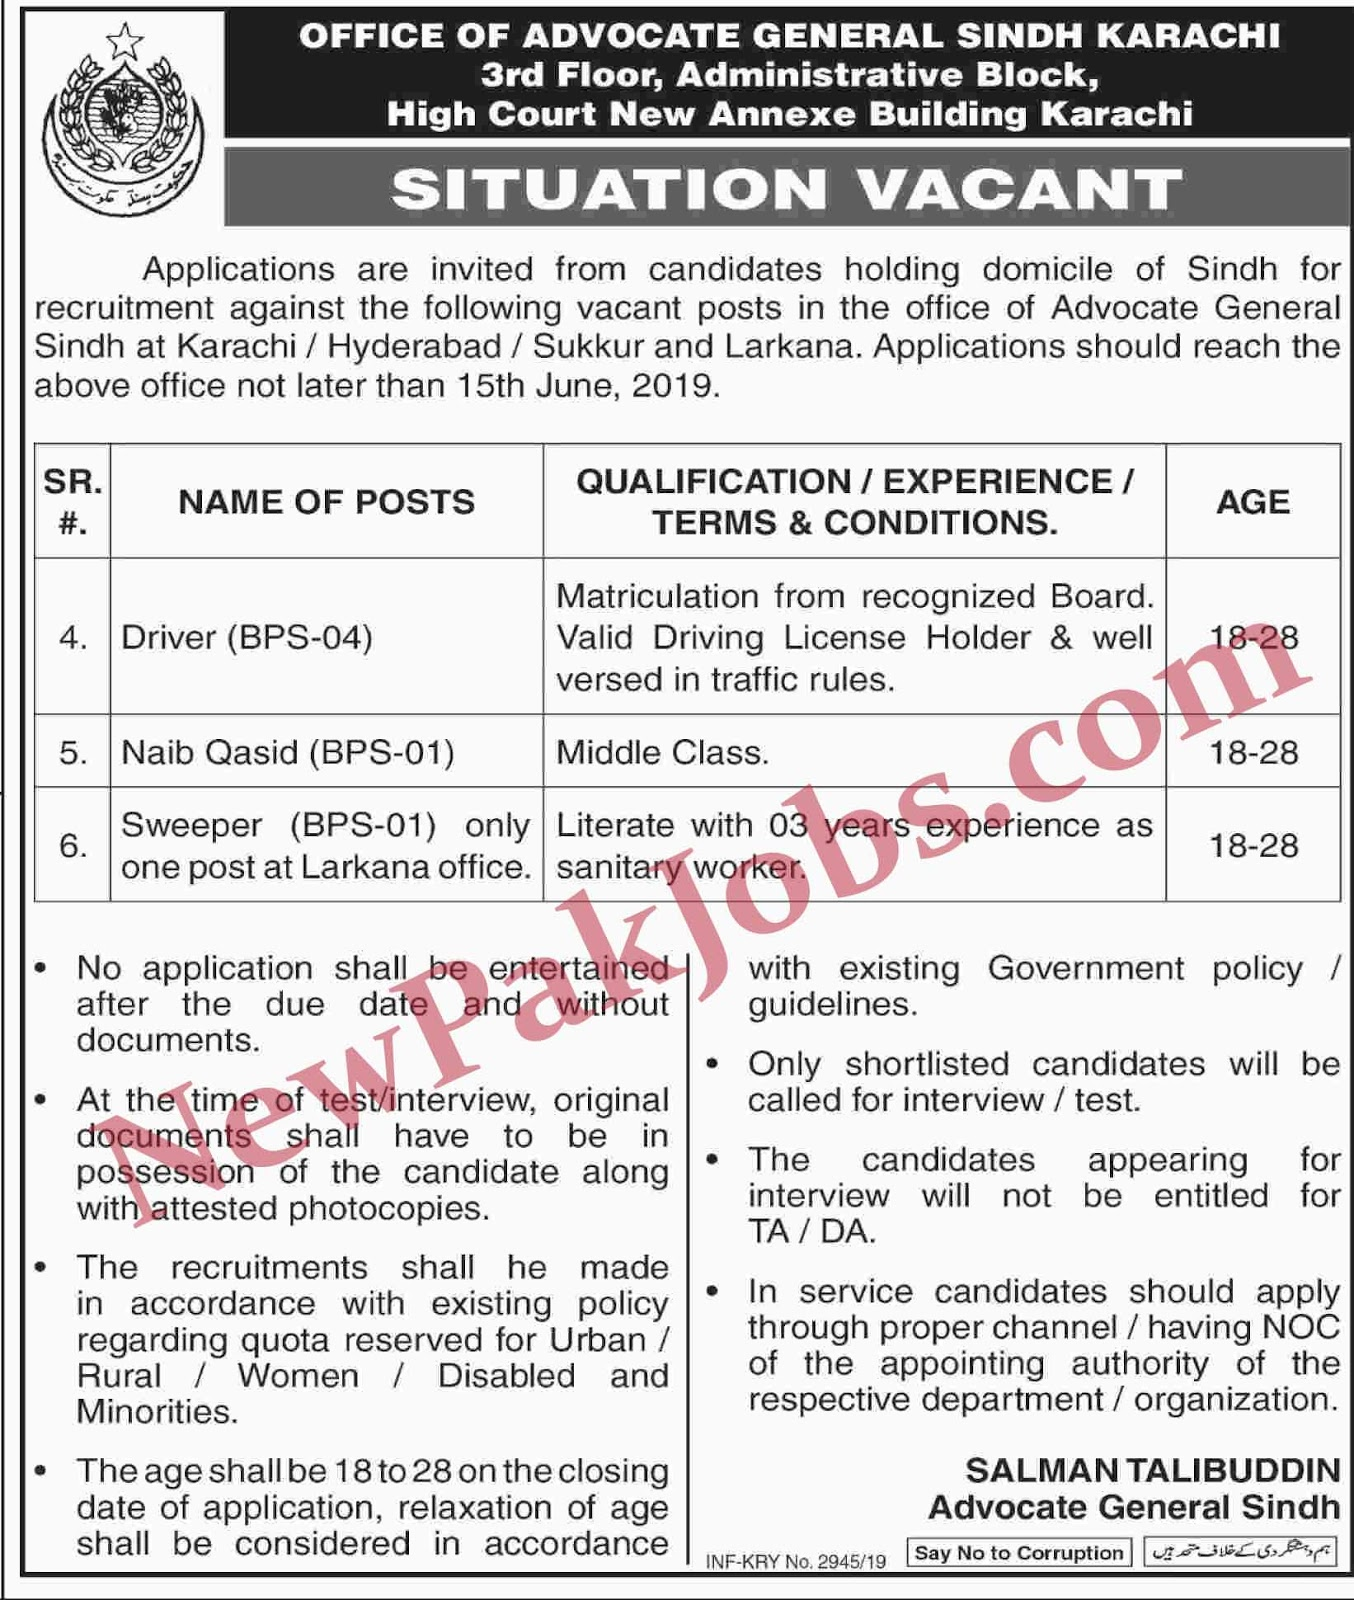 Govt Jobs for Drivers, Naib Qasid, Sweeper in Office of Advocate General Sindh Karachi